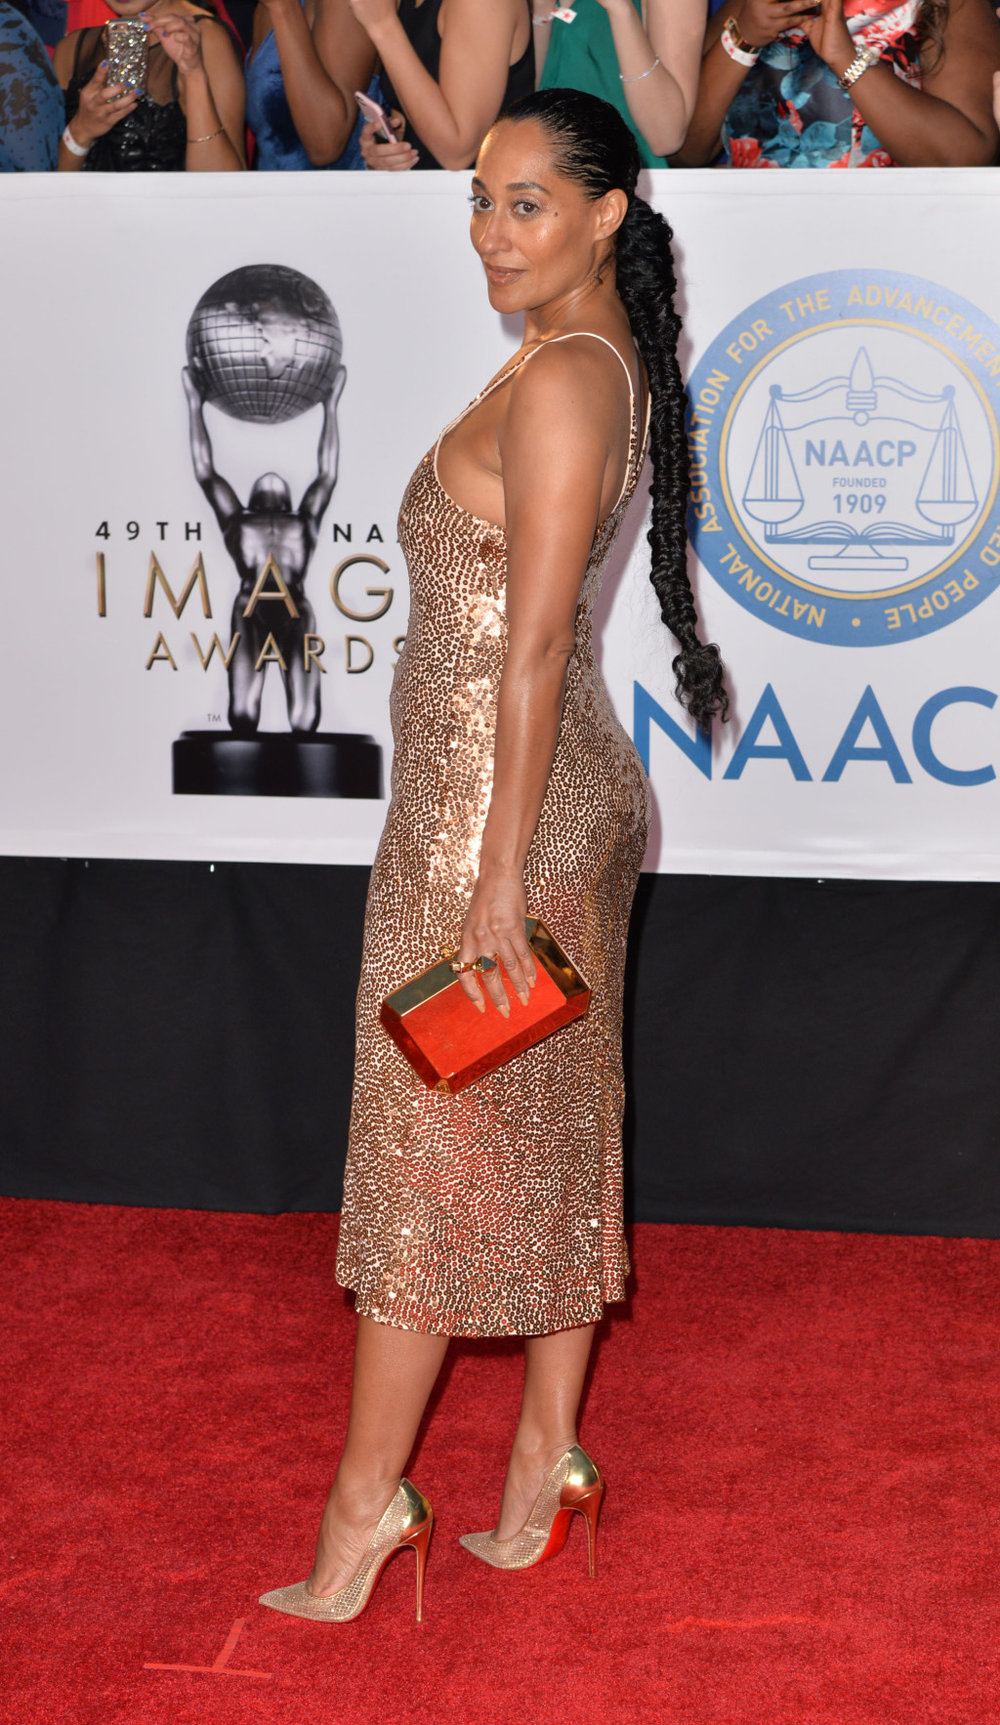 TRACEE ELLIS ROSS NAACP IMAGE AWARDS 2018.jpg